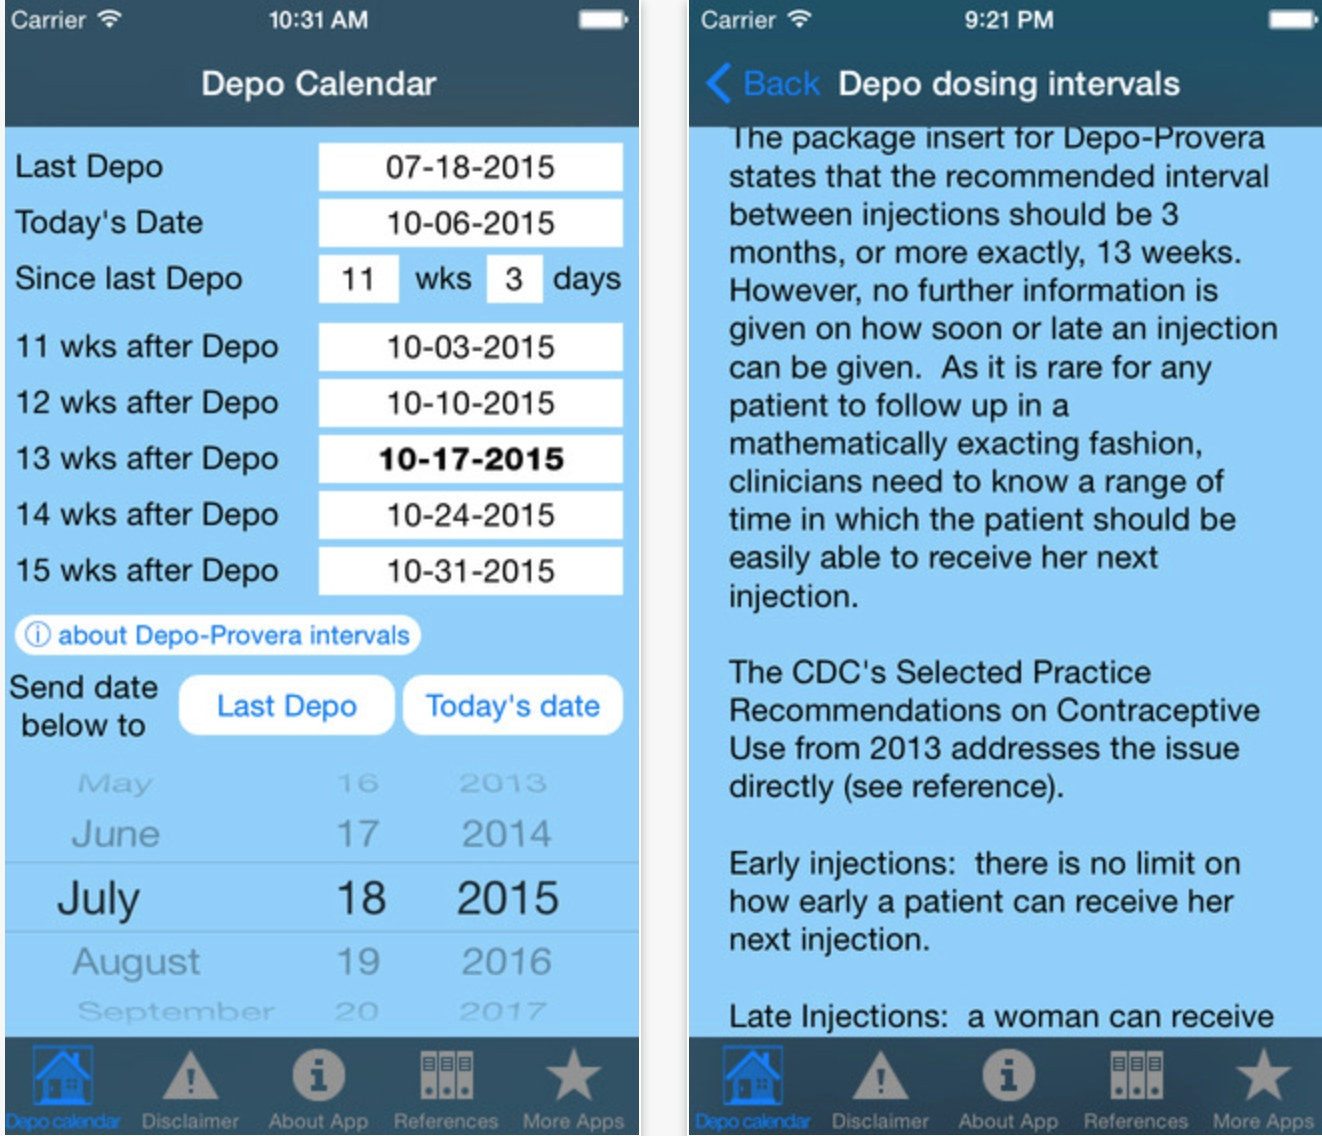 Depo Calendar App Could Significantly Improve Contraception  Depo-Provera Calendar From Manufacturer